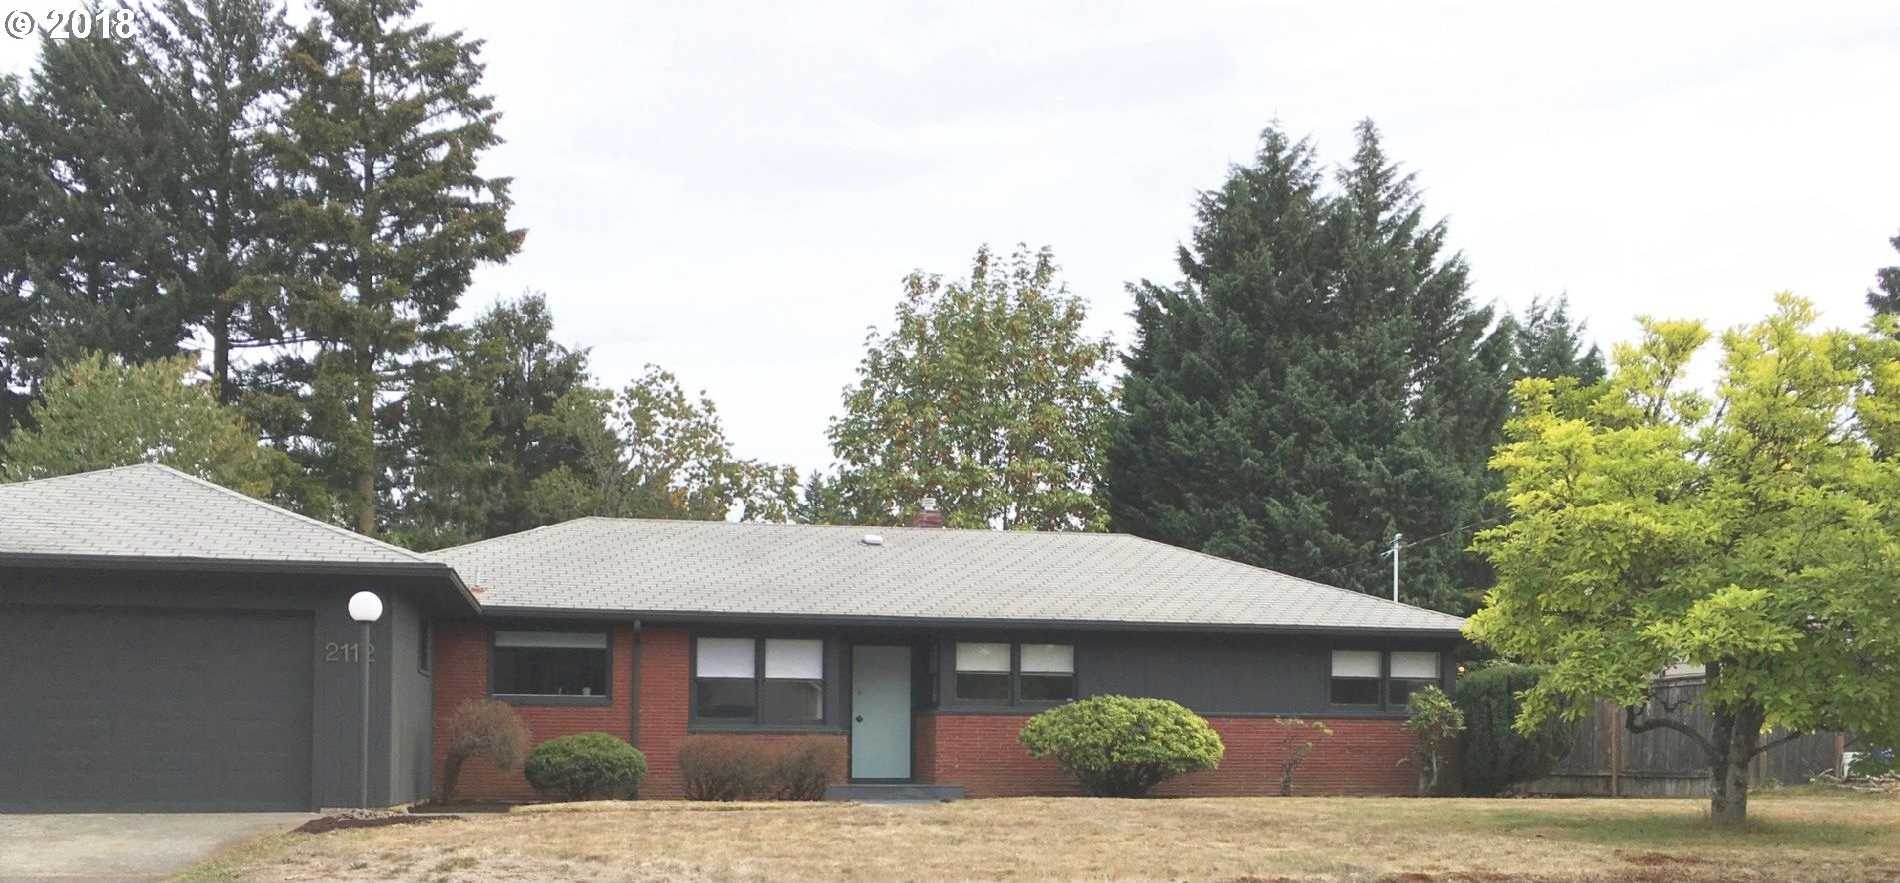 $475,000 - 3Br/2Ba -  for Sale in Portland